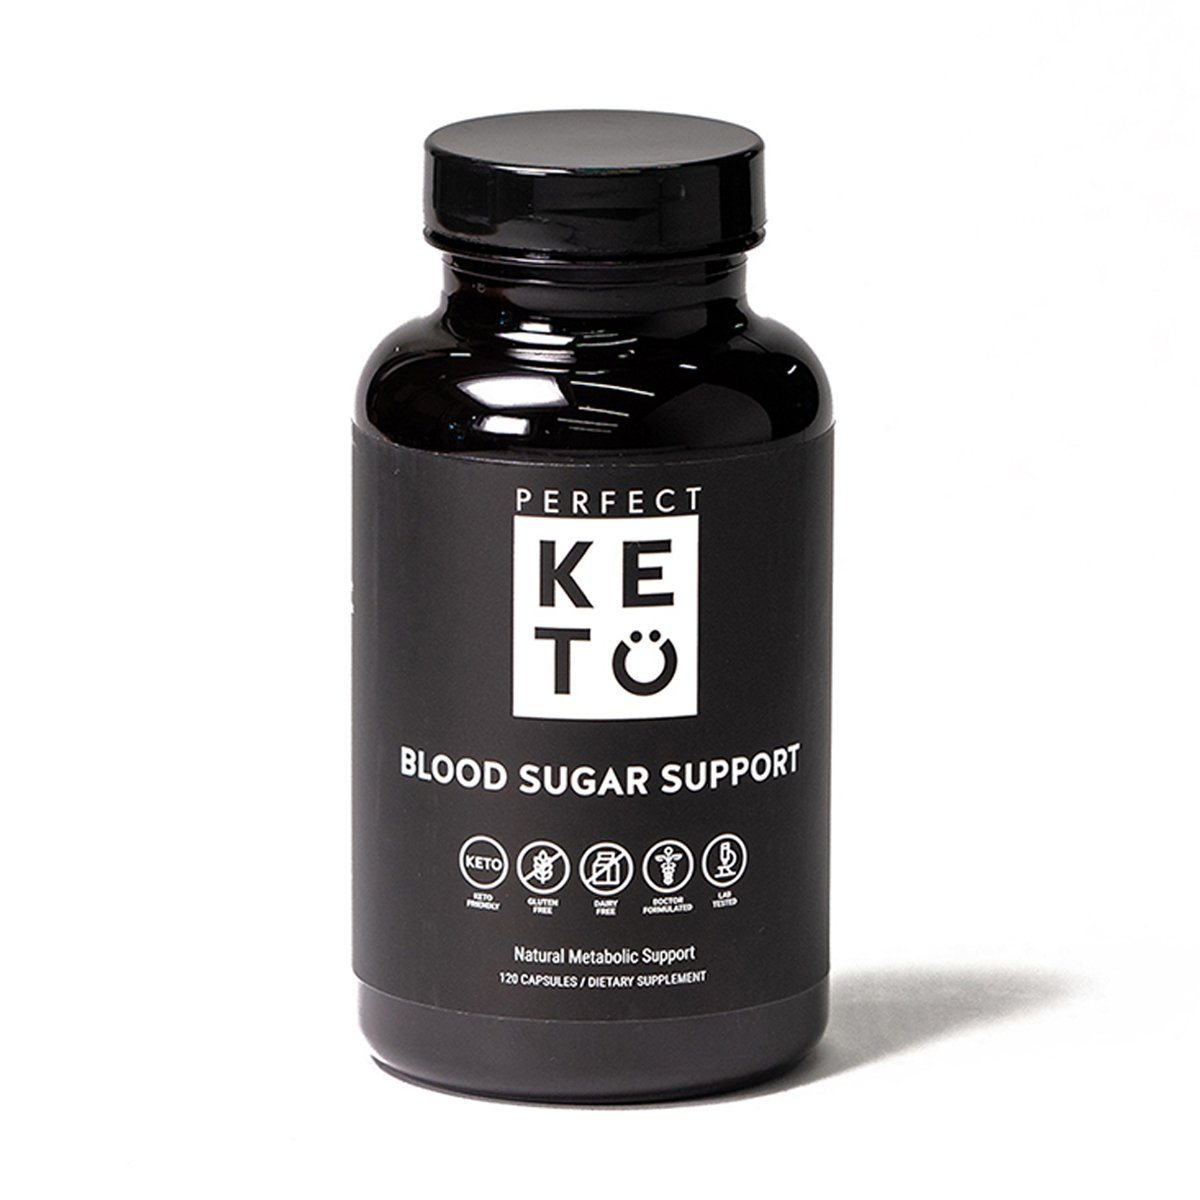 Blood Sugar Support Capsules